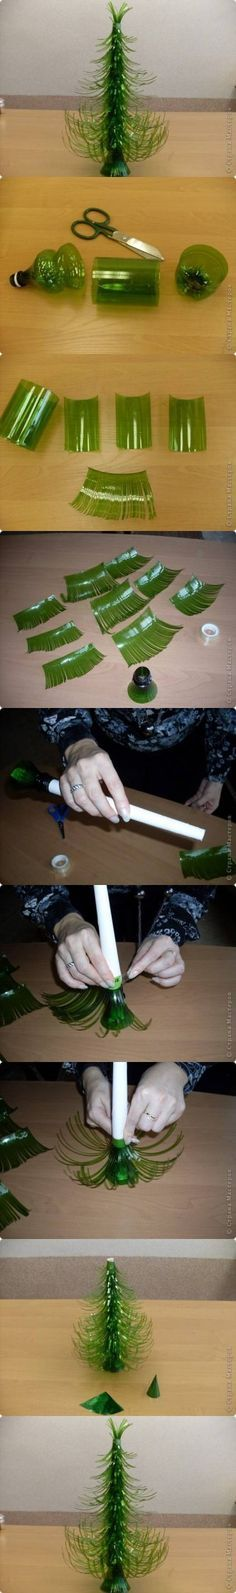 DIY Plastic Bottle Christmas Trees DIY Projects